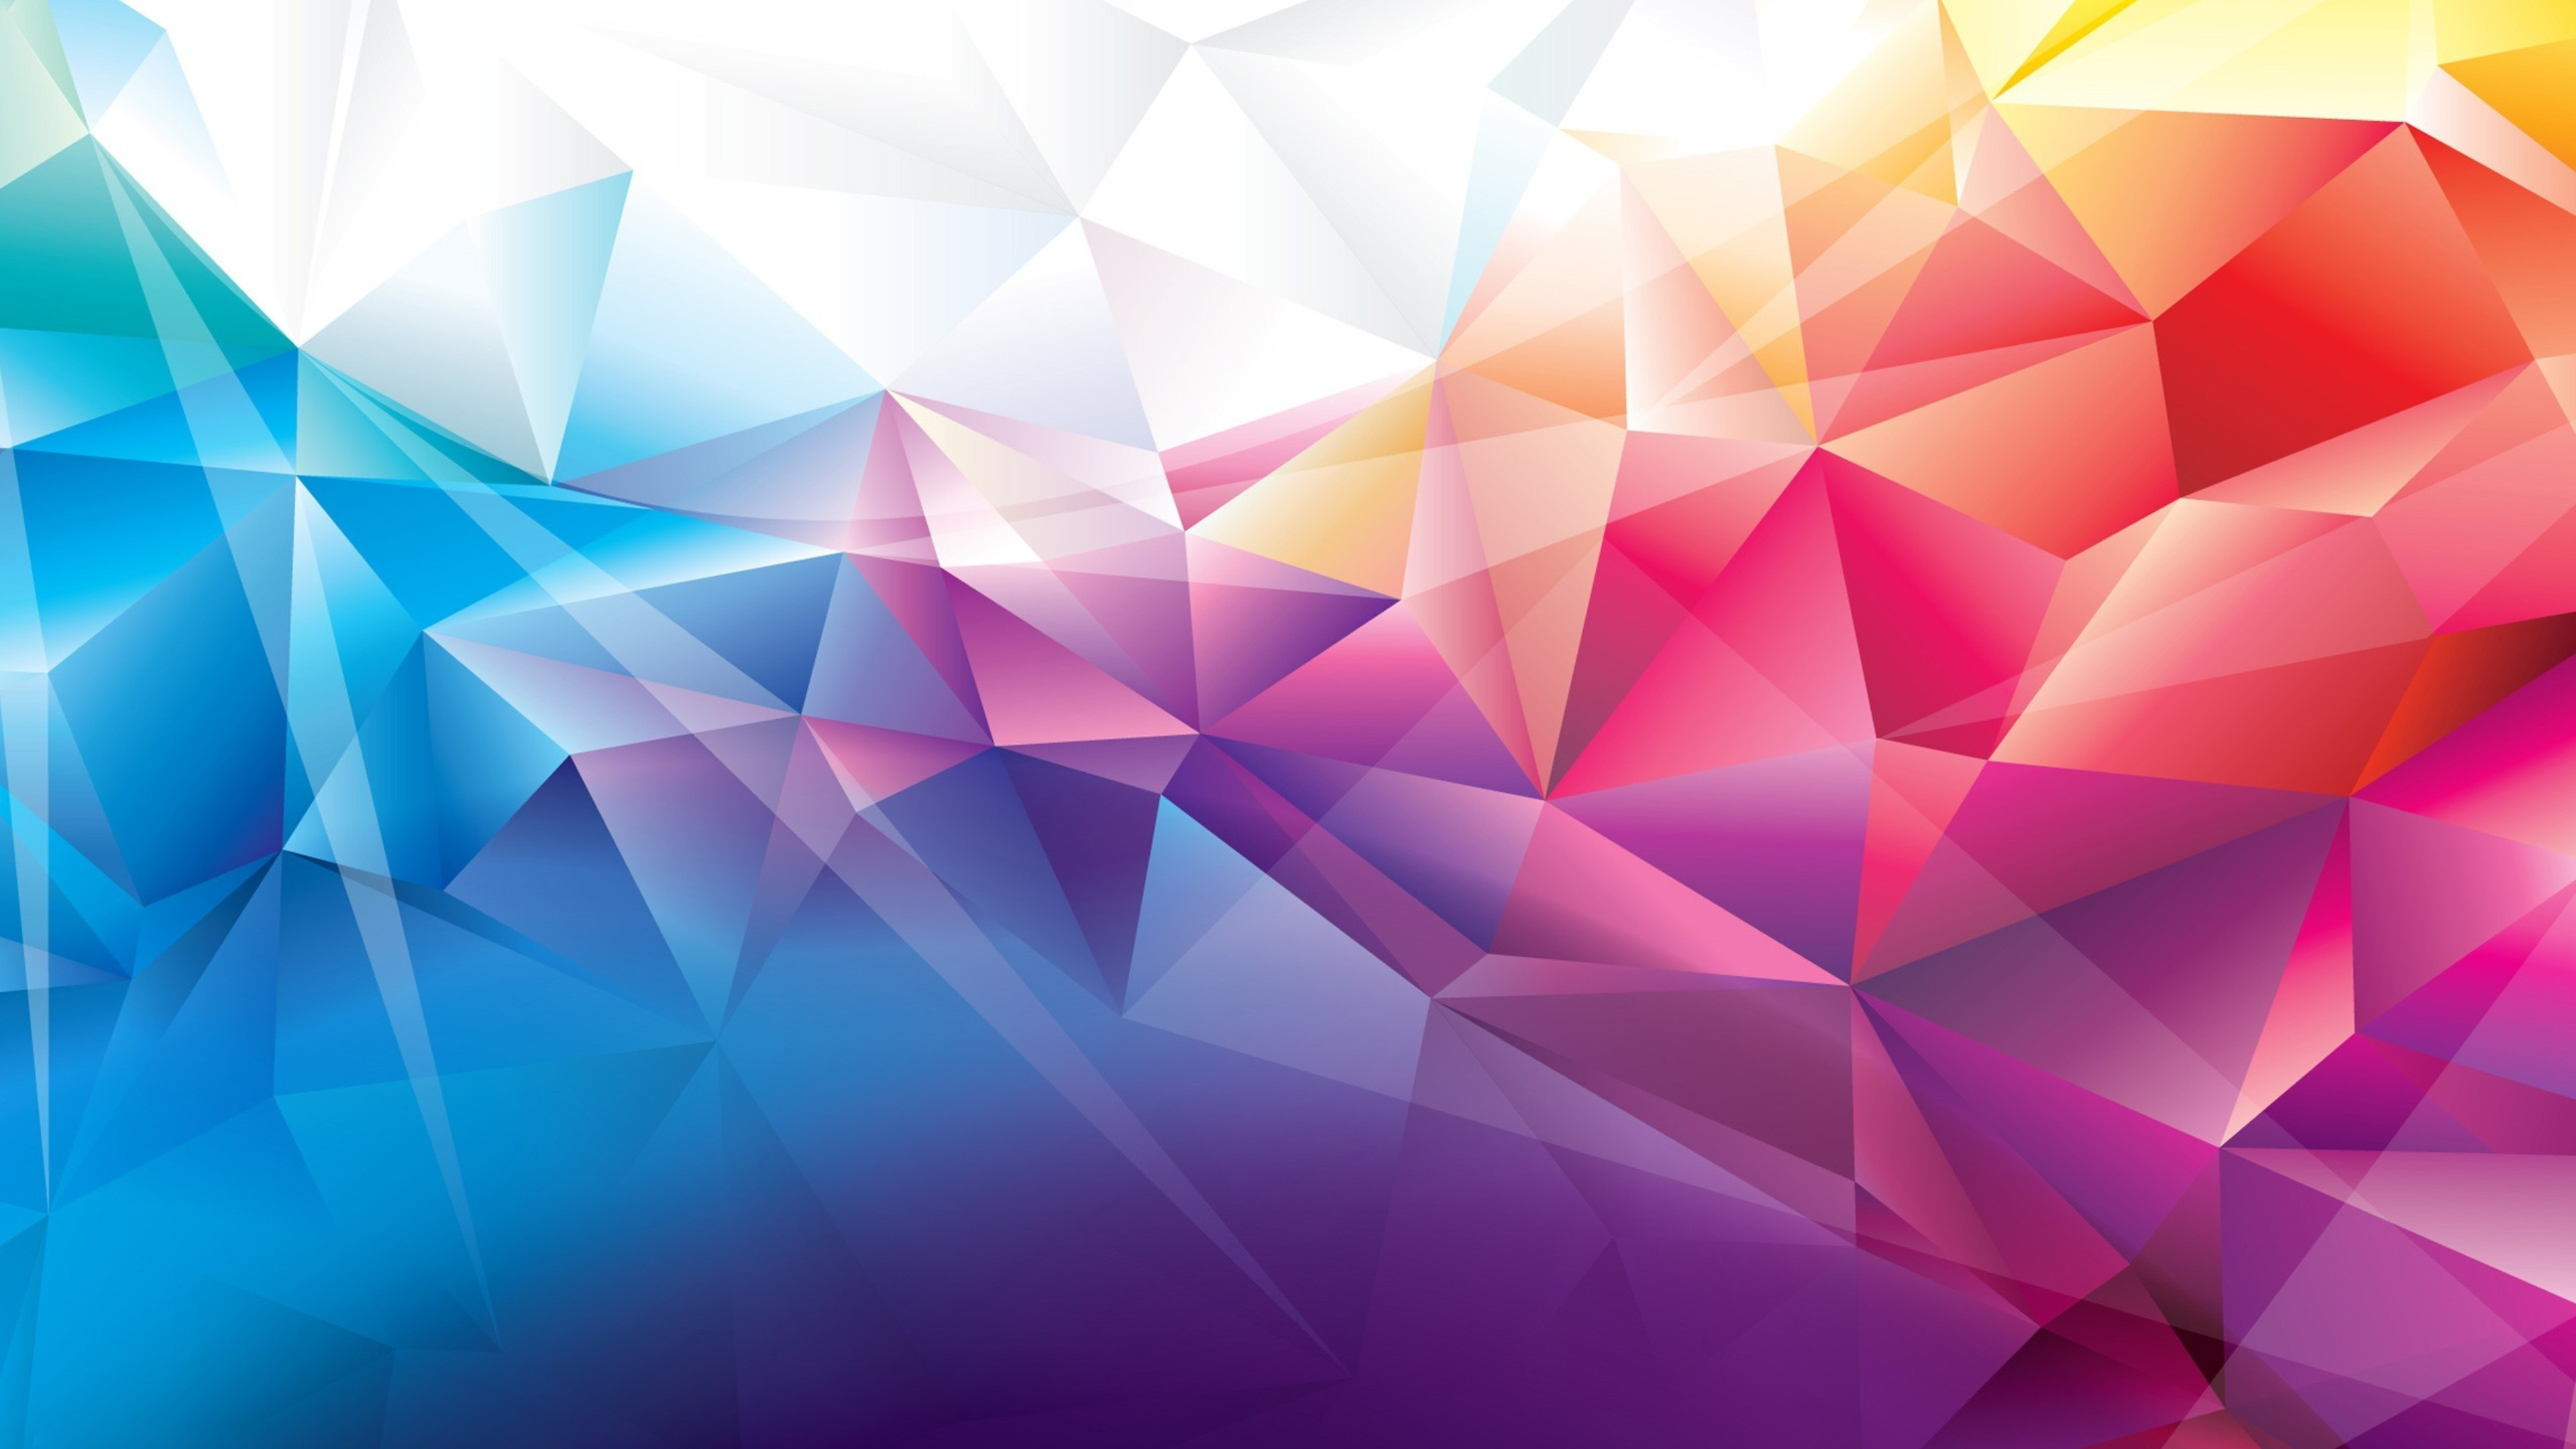 Colorful Polygons Hd Abstract 4k Wallpapers Images